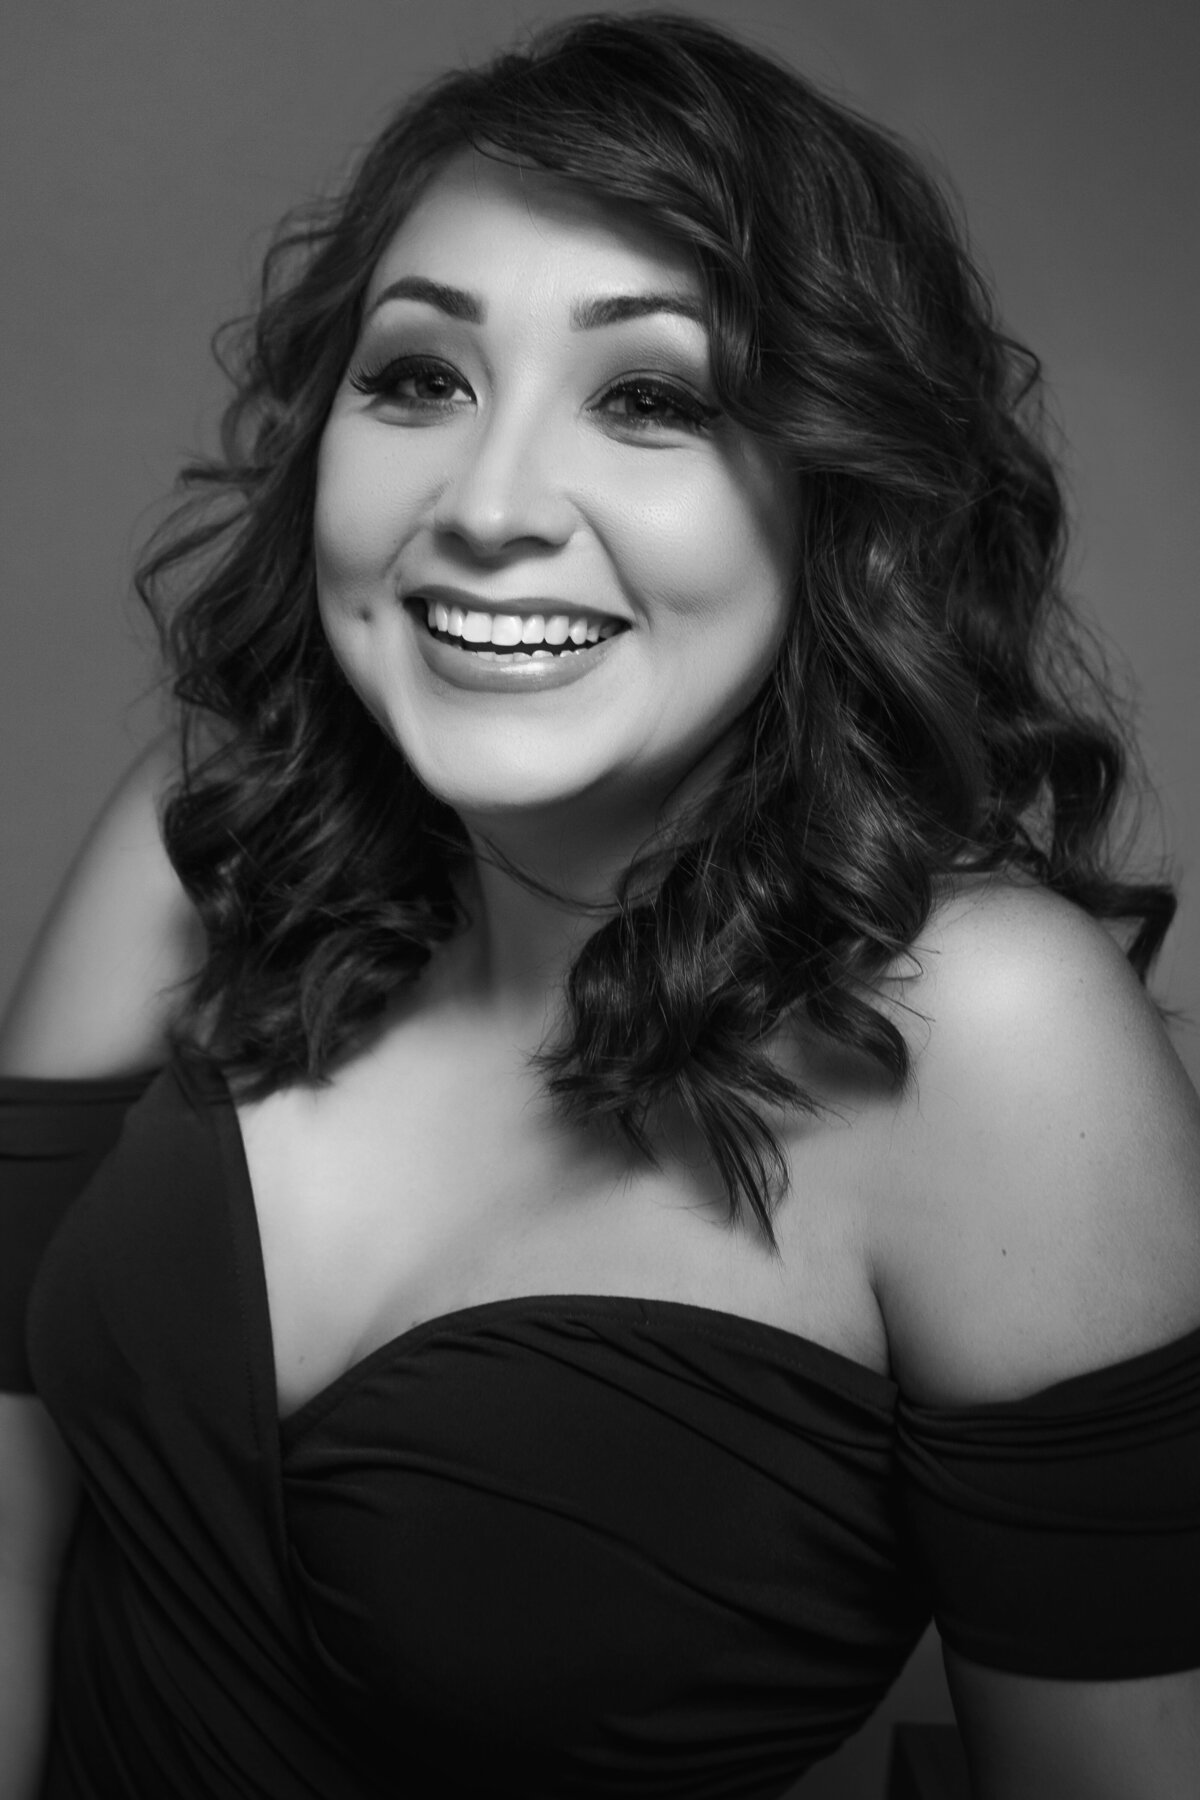 garland texas glamorous beauty portrait black and white photography for woman smiling and laughing